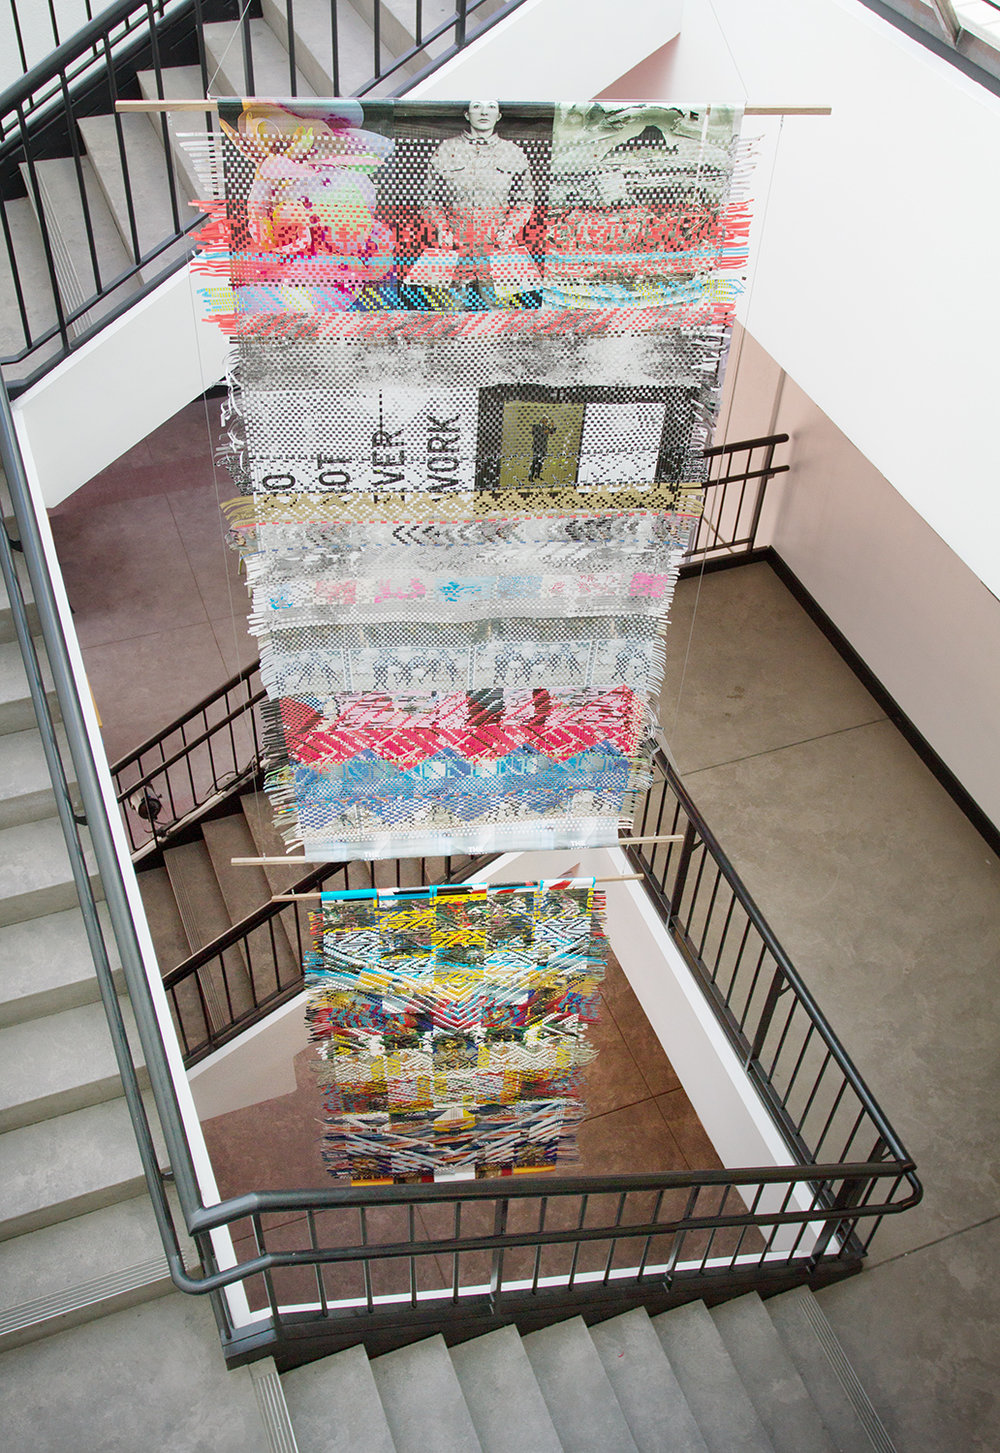 Installation View, Santa Cruz Museum of Art and History